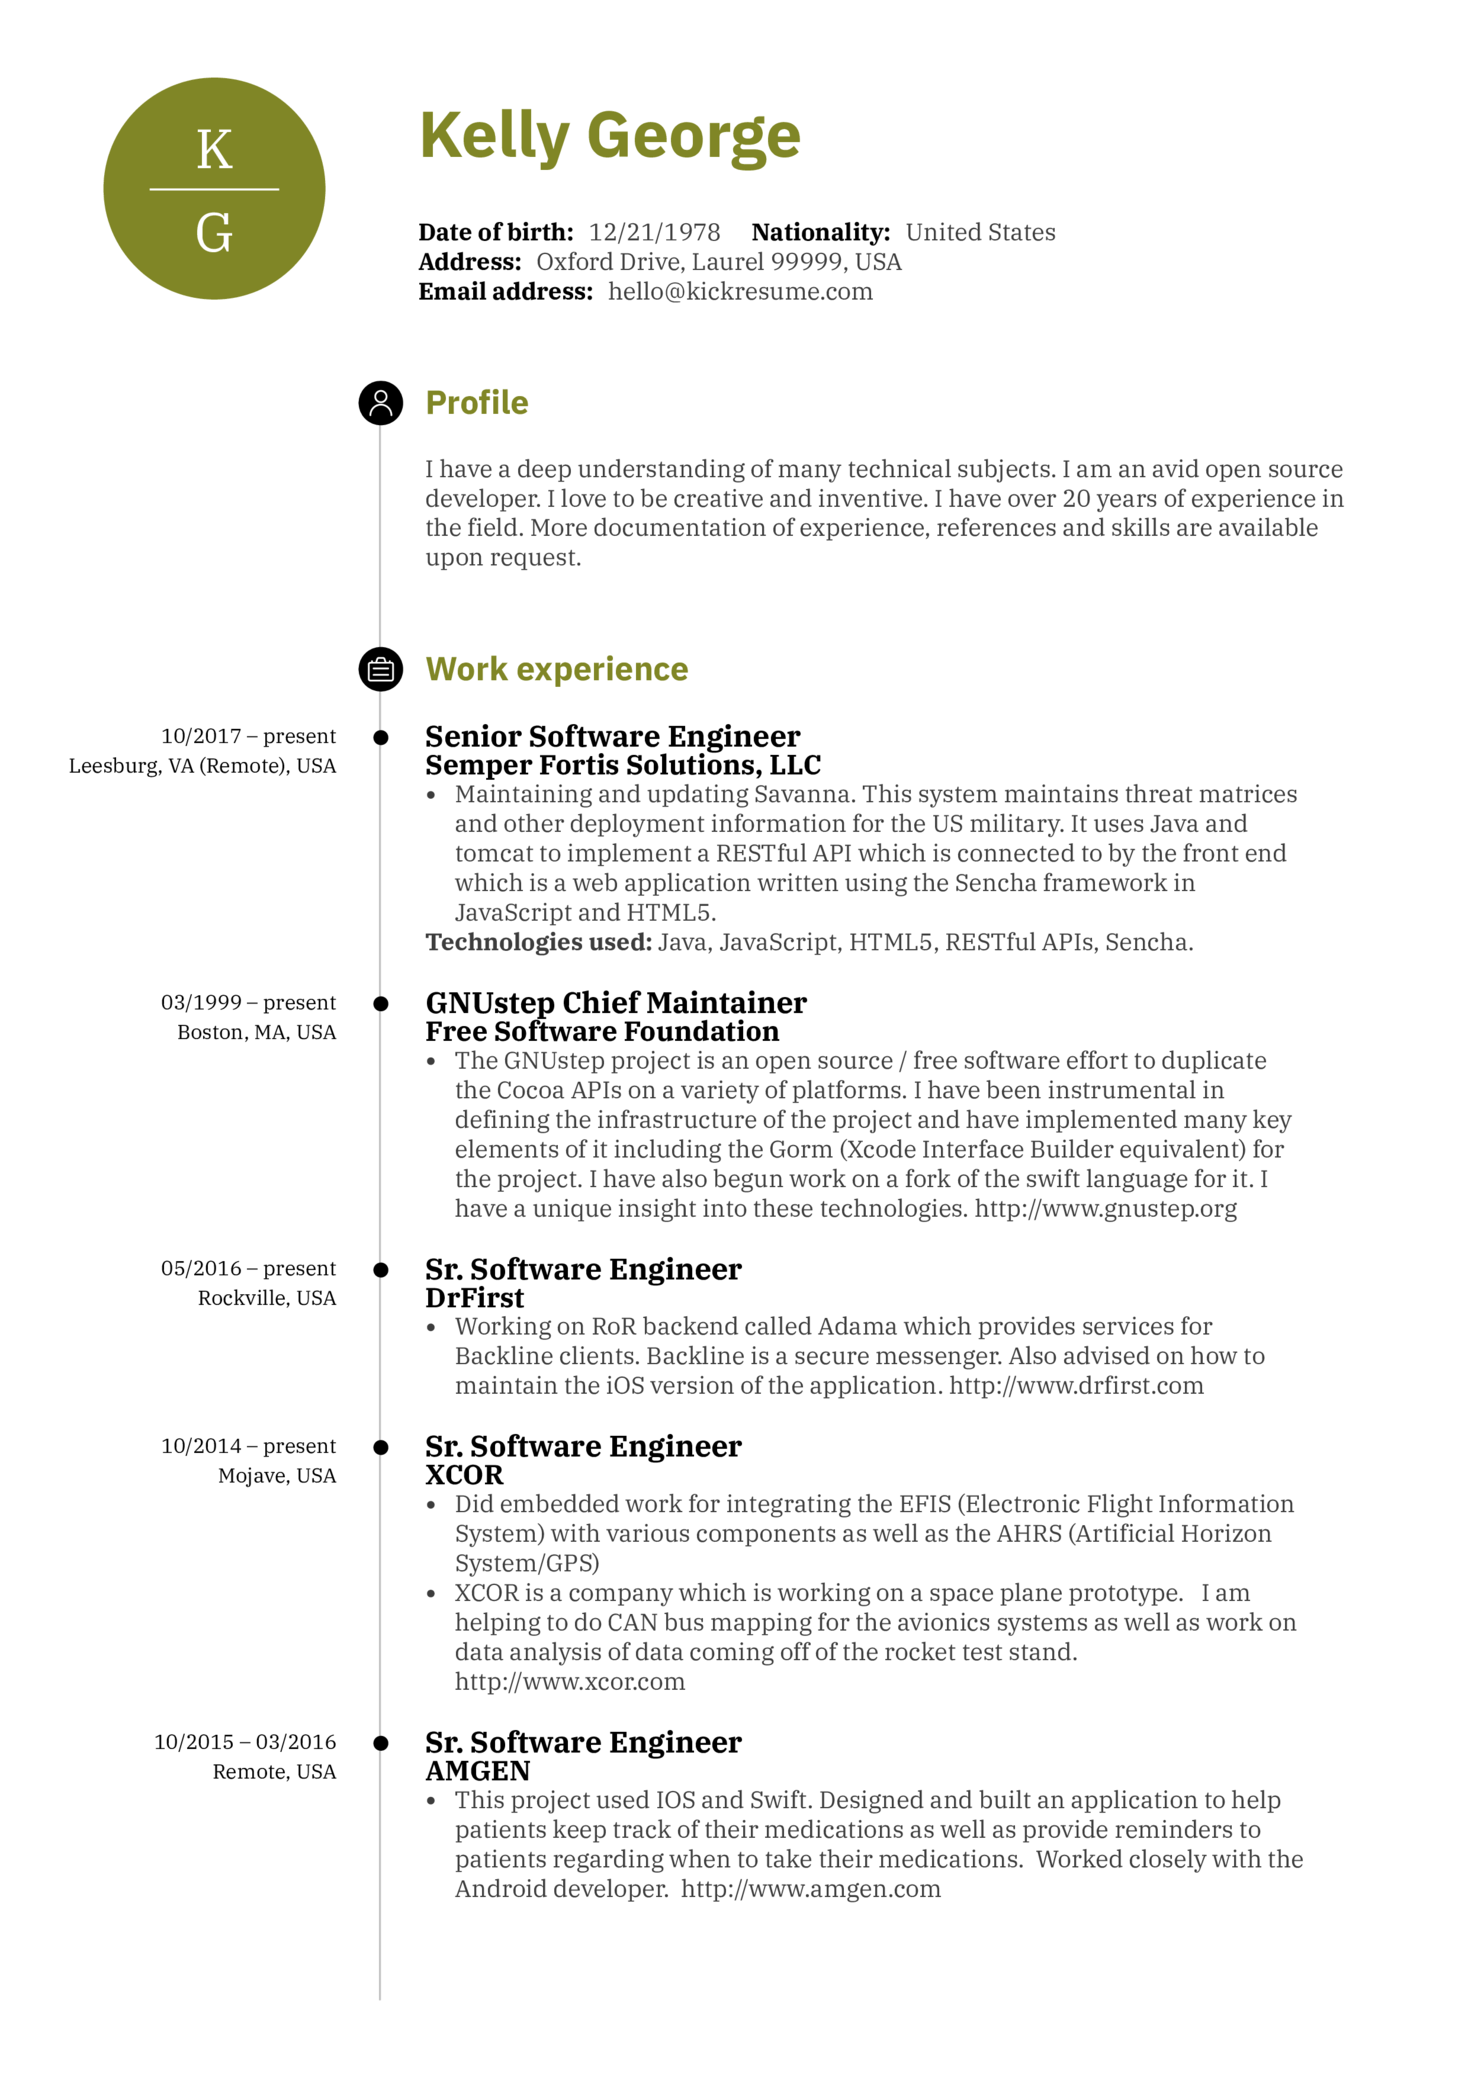 Senior Software Engineer Resume Sample (parte 1)